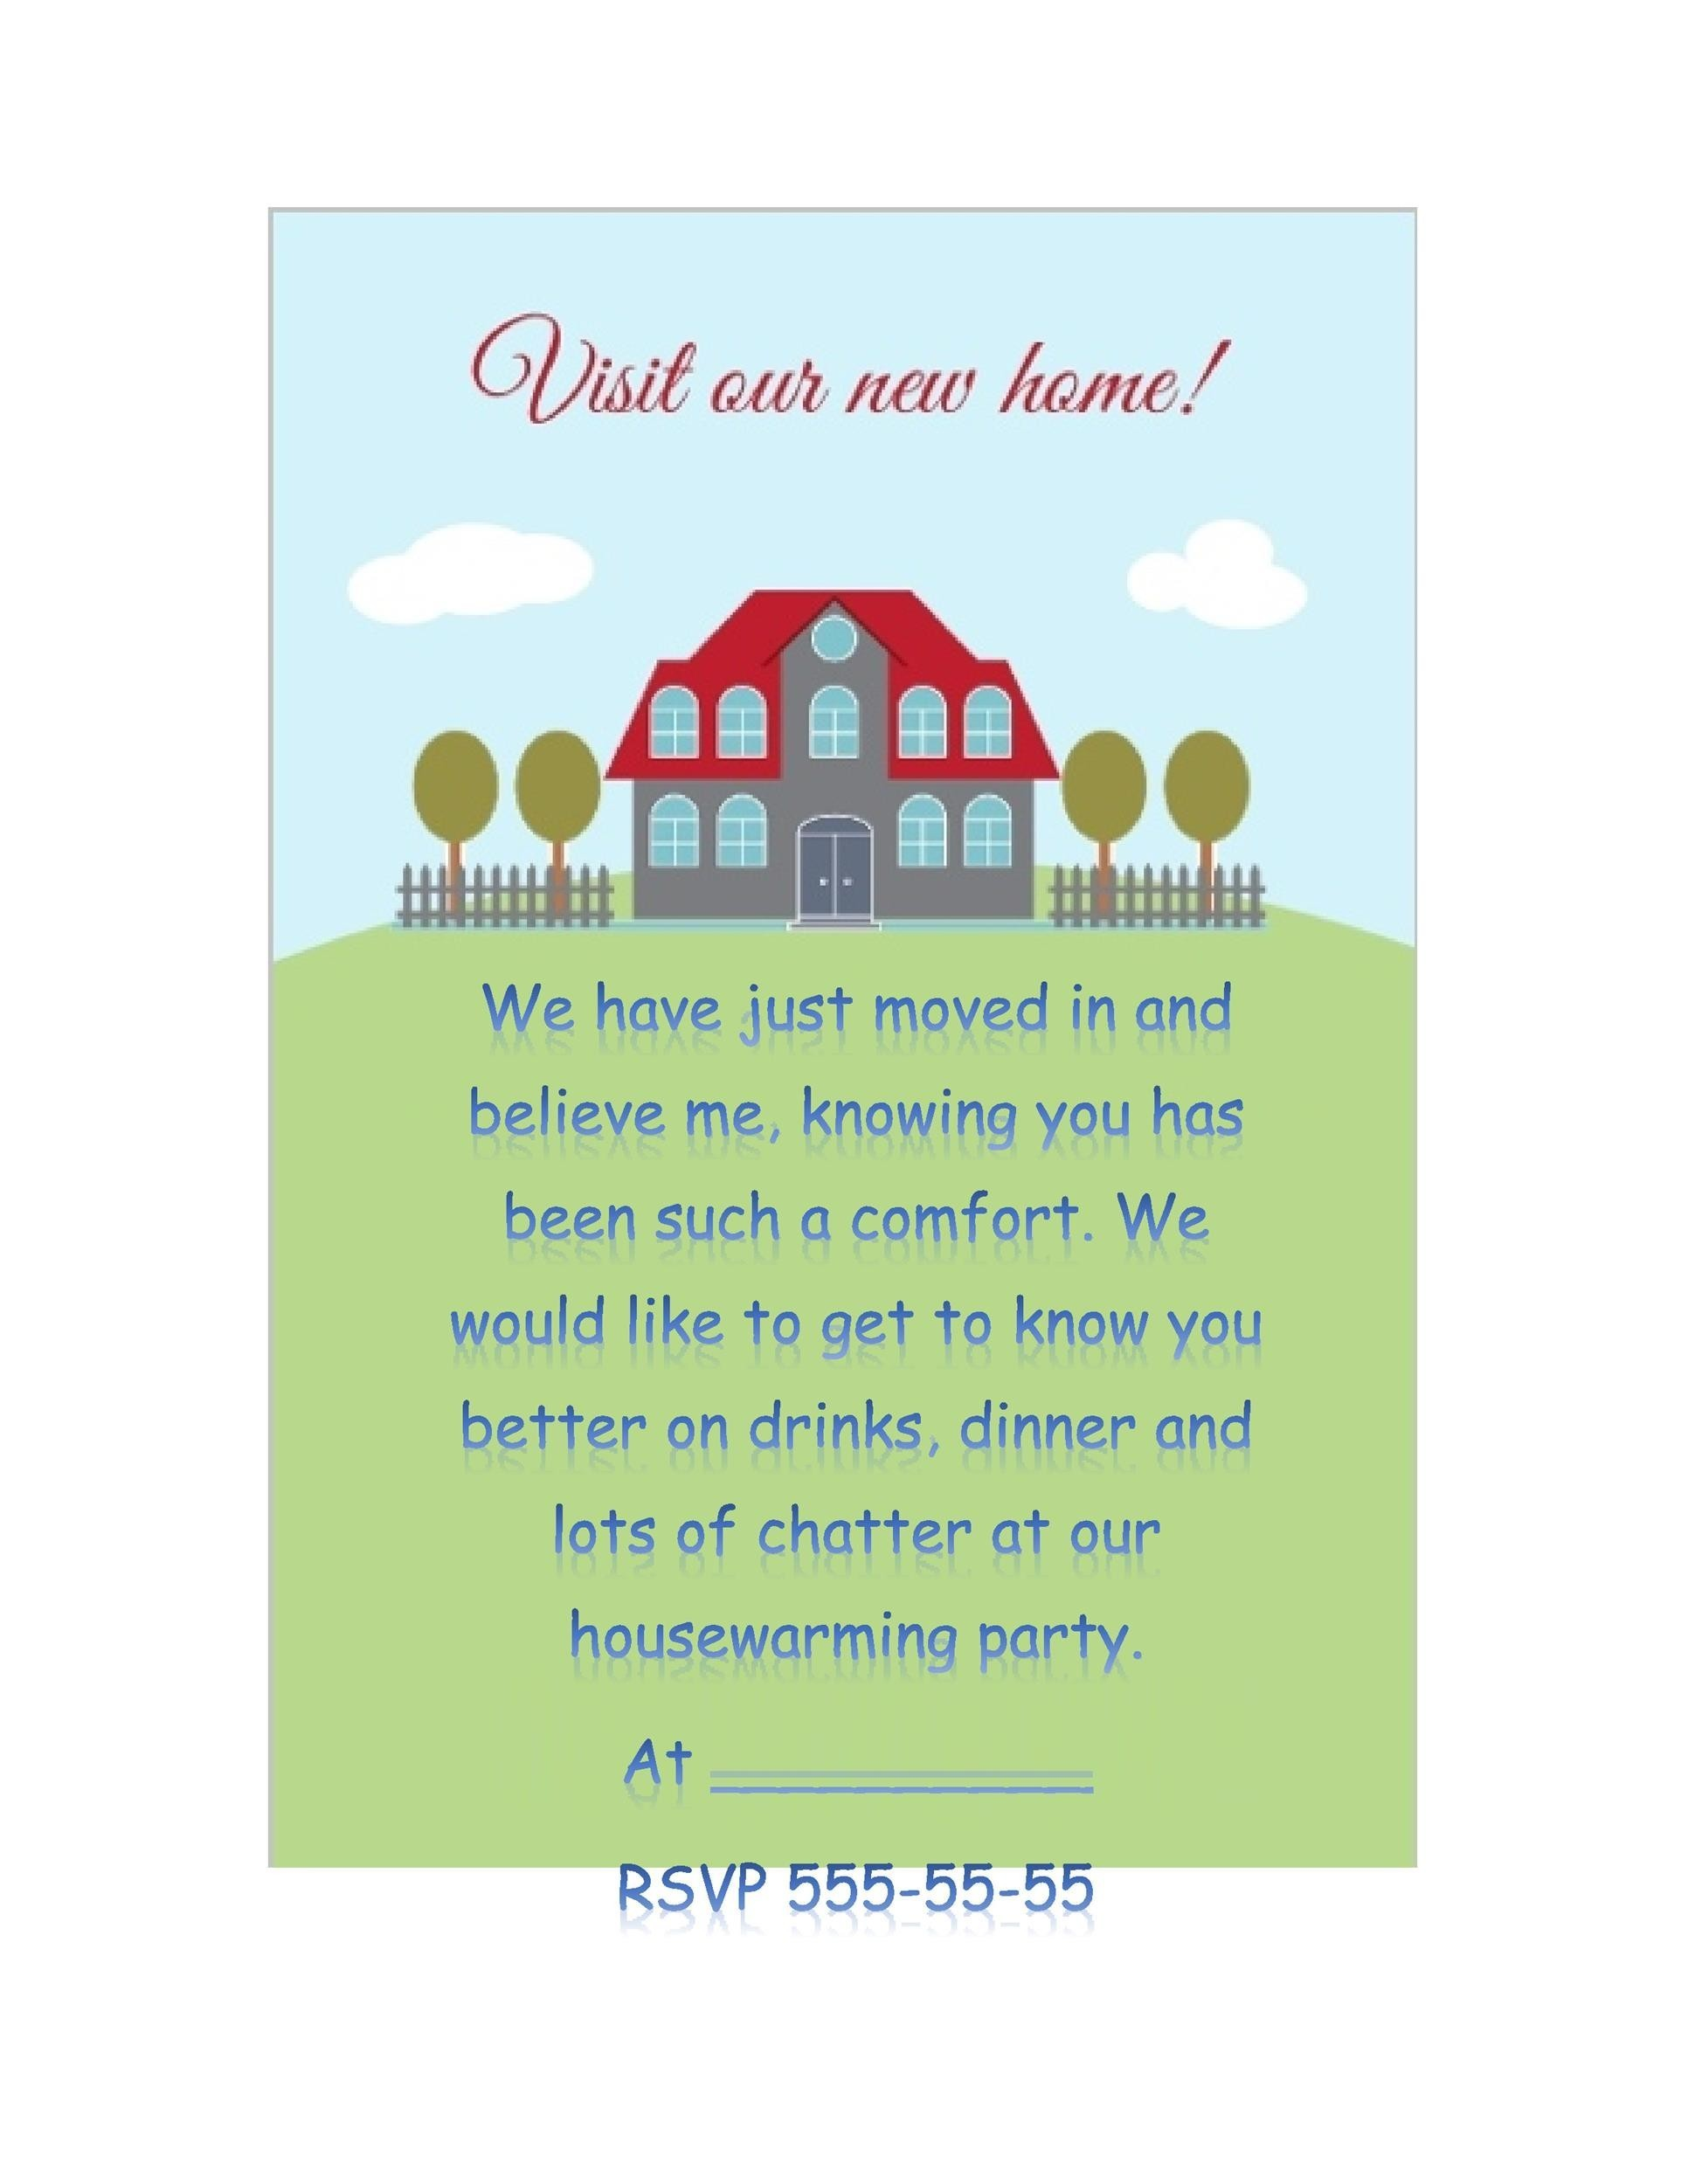 housewarming party invitation letter